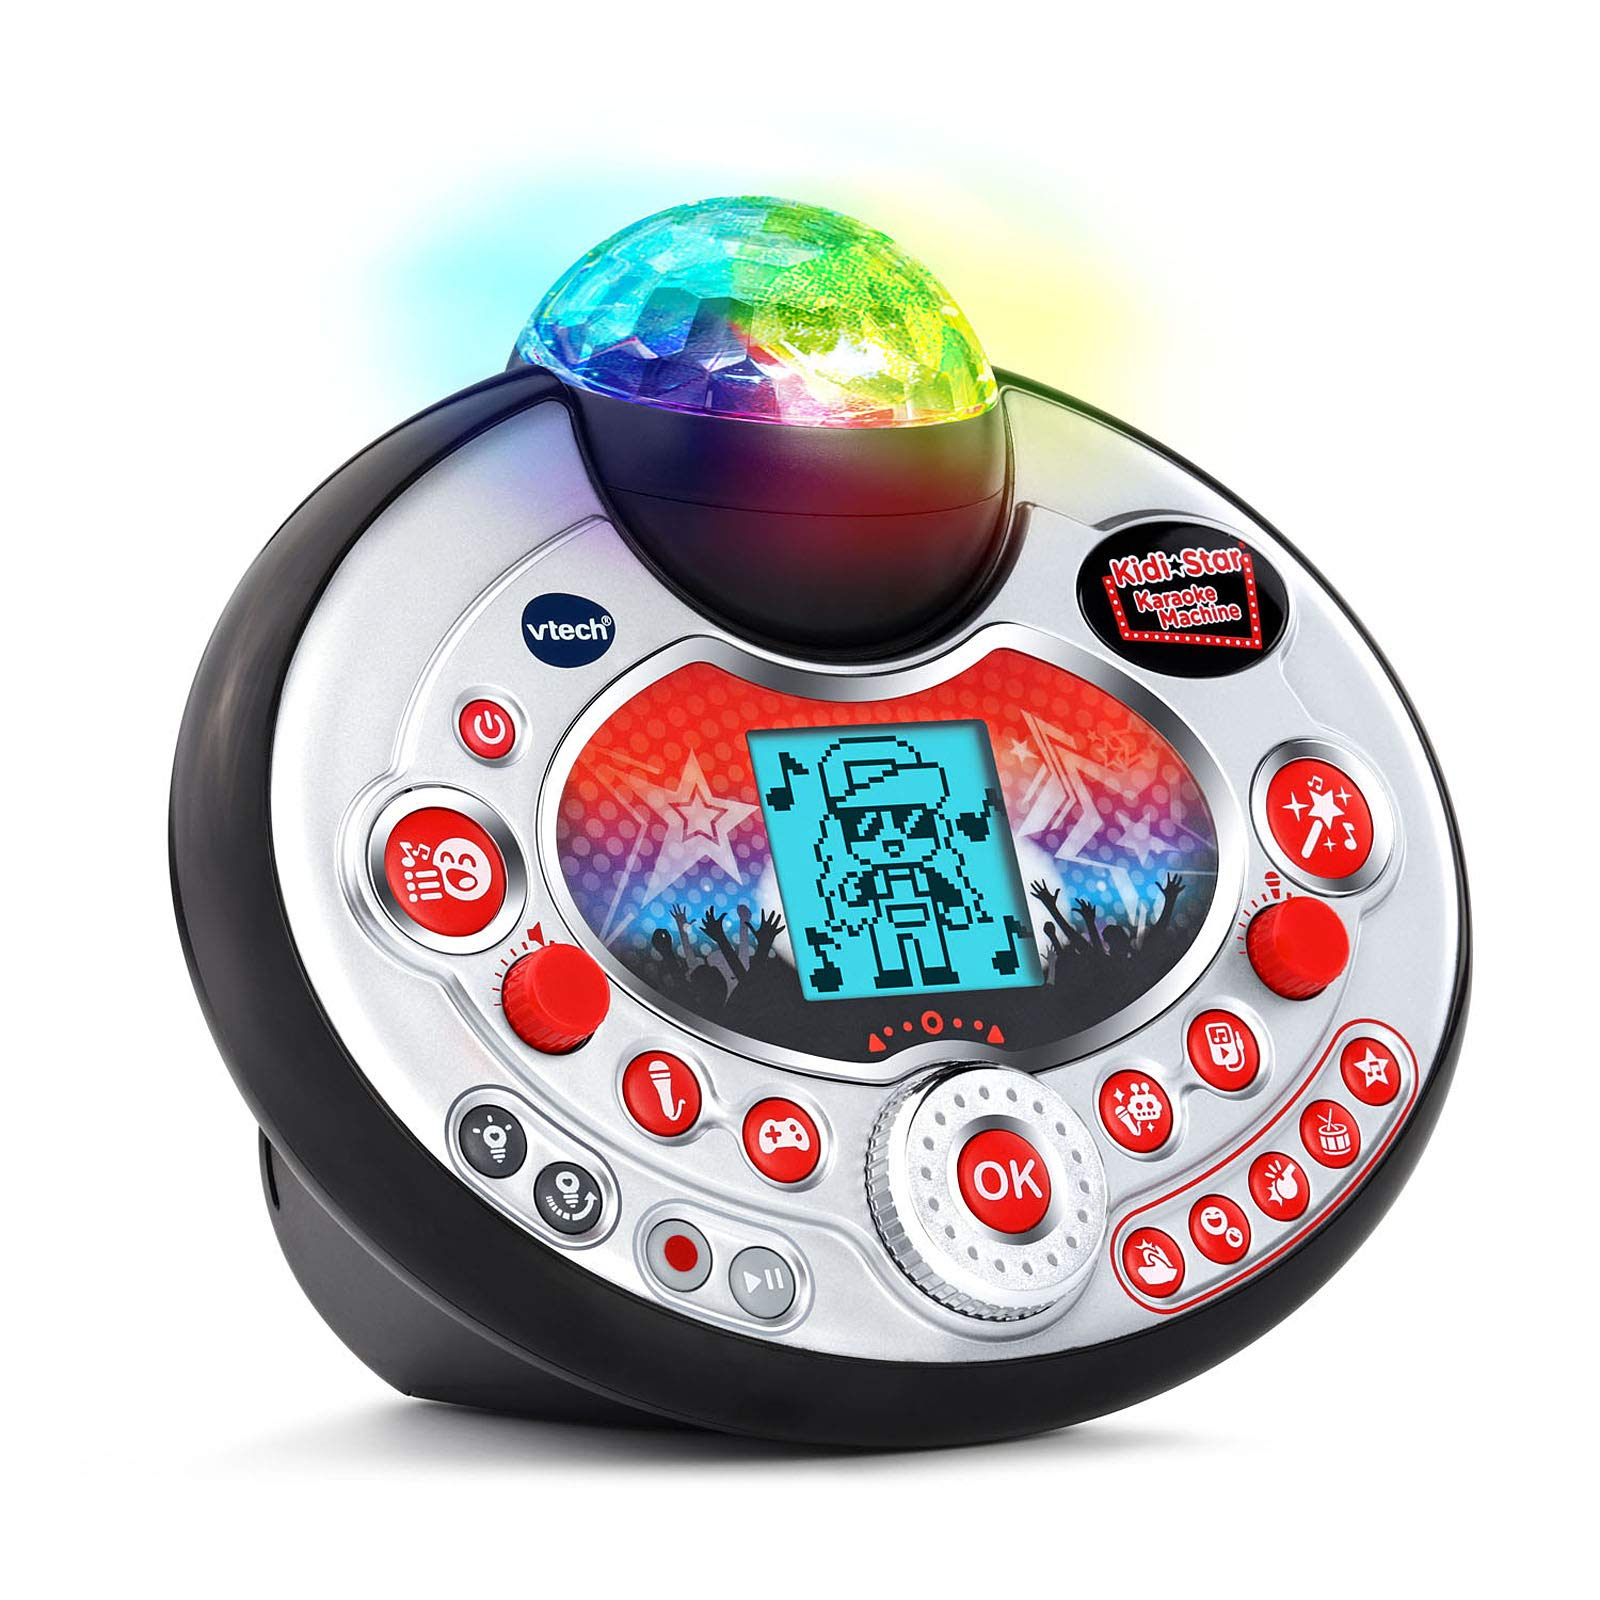 VTech Kidi Star Karaoke Machine (Black) by VTech (Image #2)